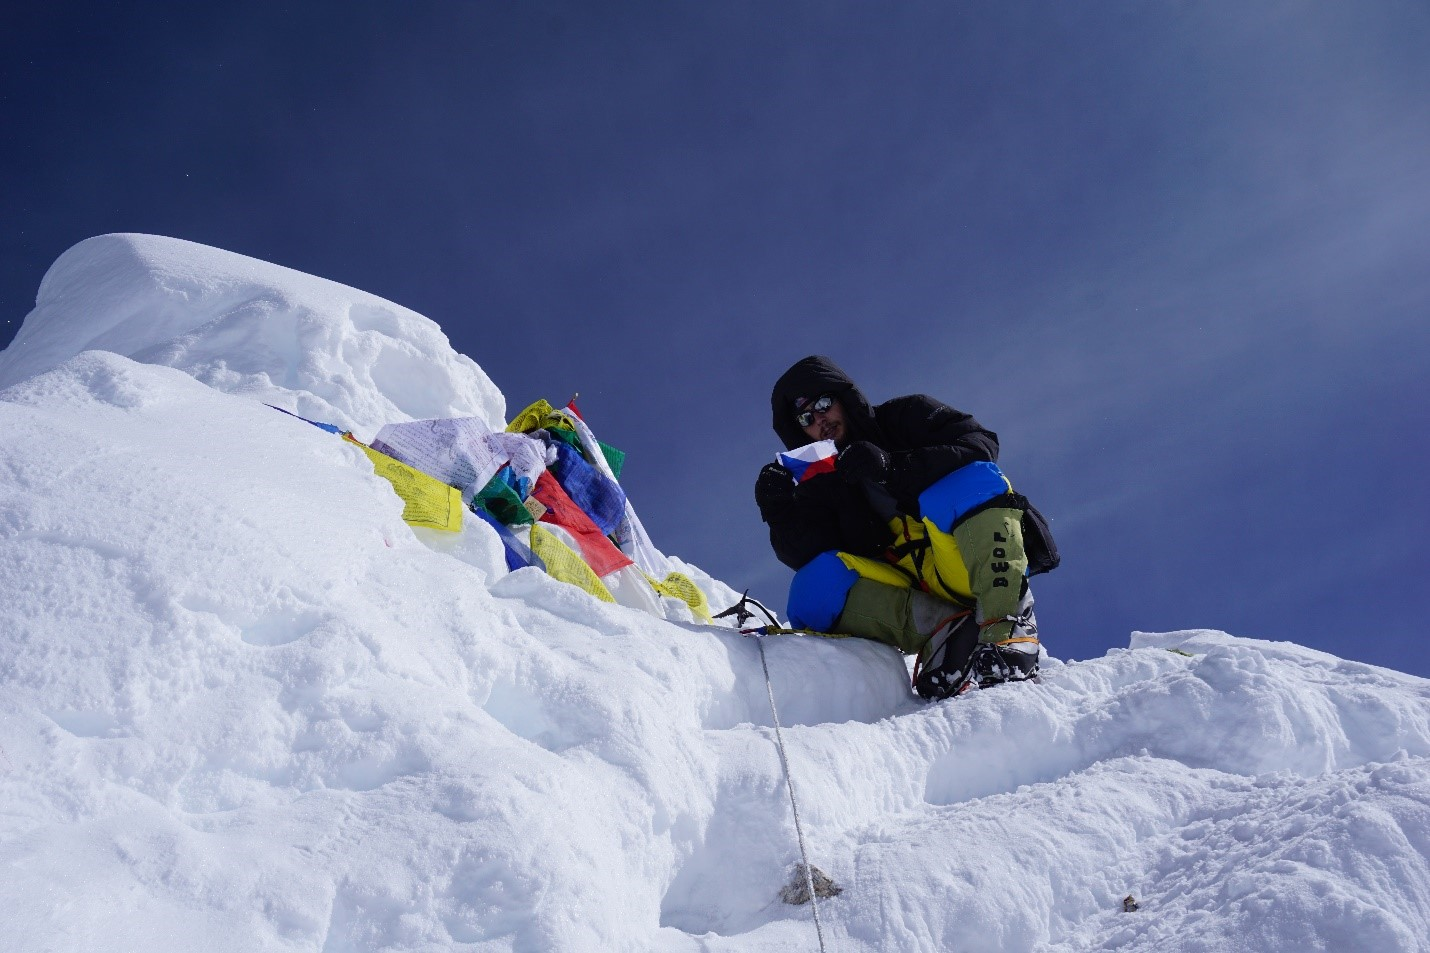 Jan Summits Mt Manaslu